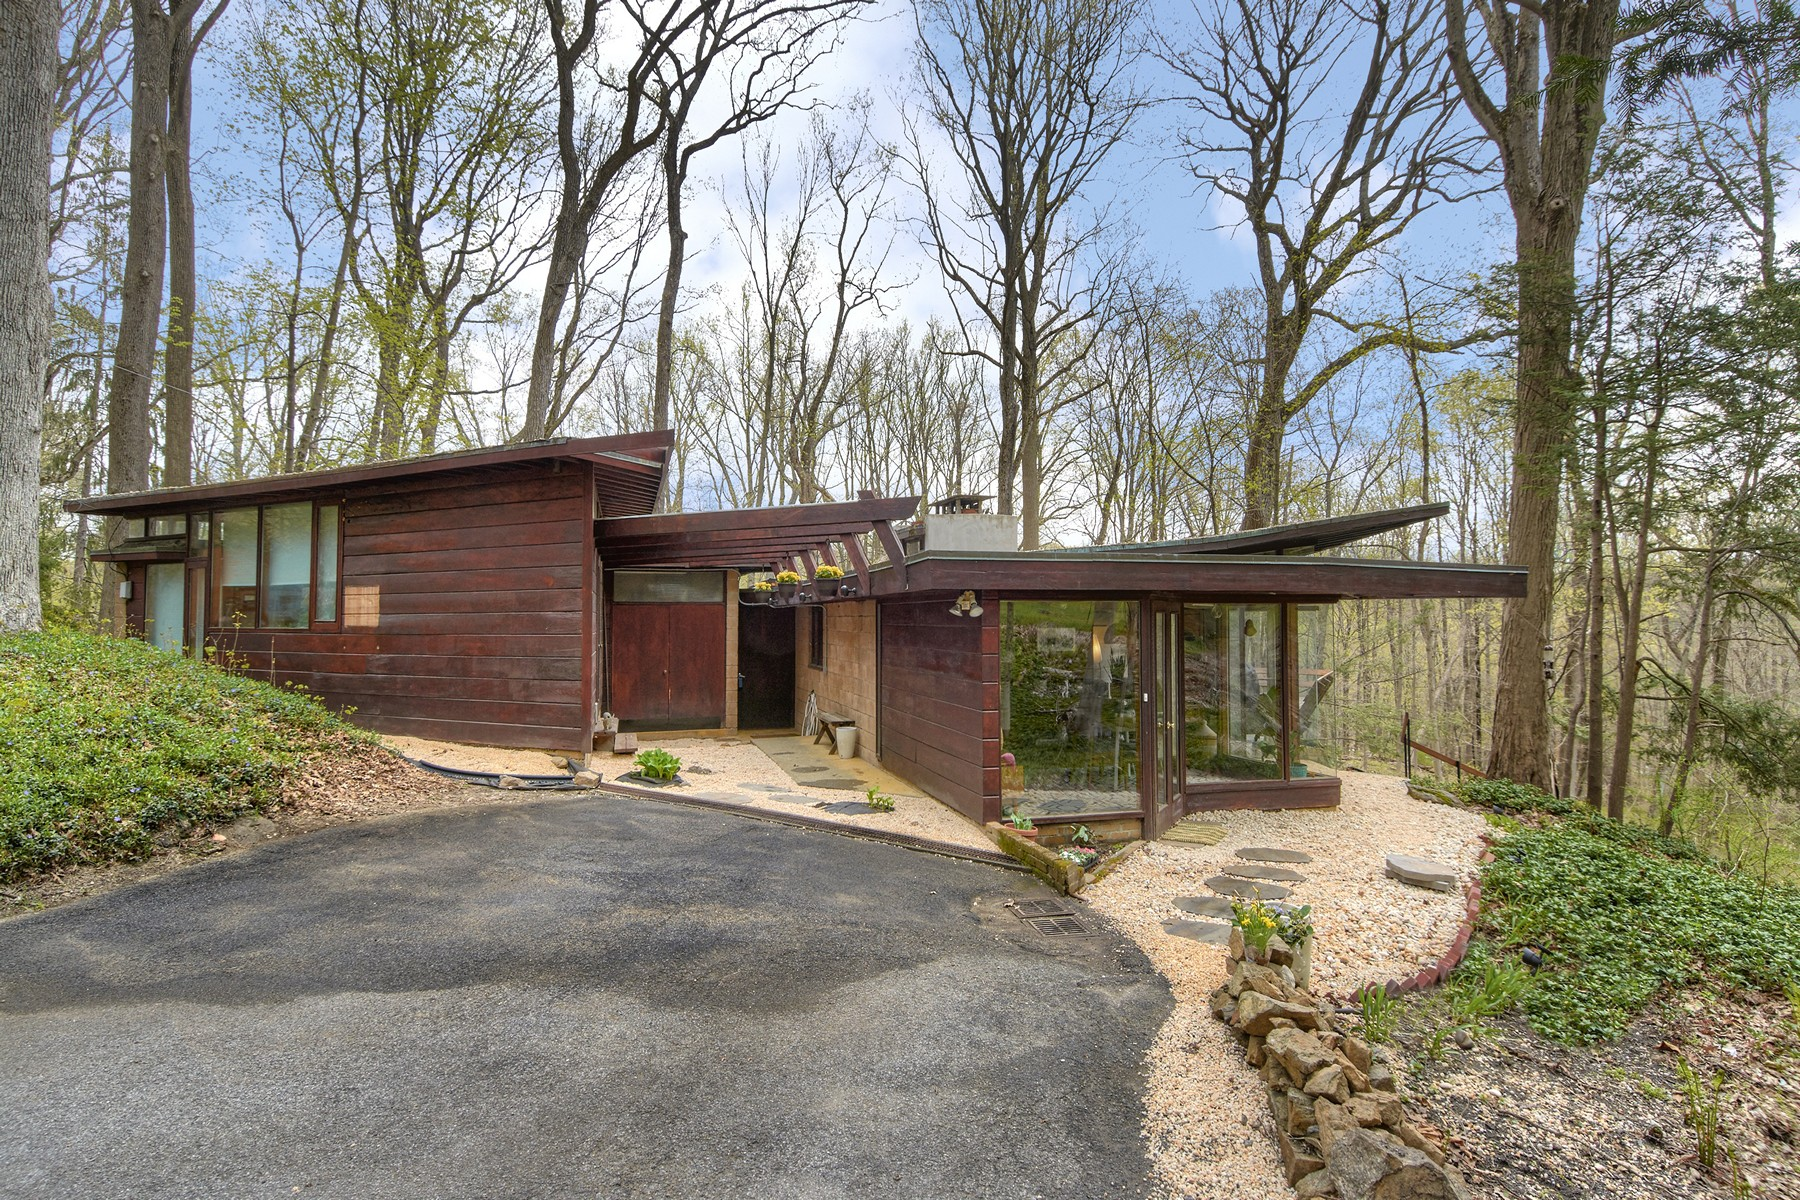 Single Family Home for Sale at Mid-Century Modern 6 Usonia Road Pleasantville, New York 10570 United States